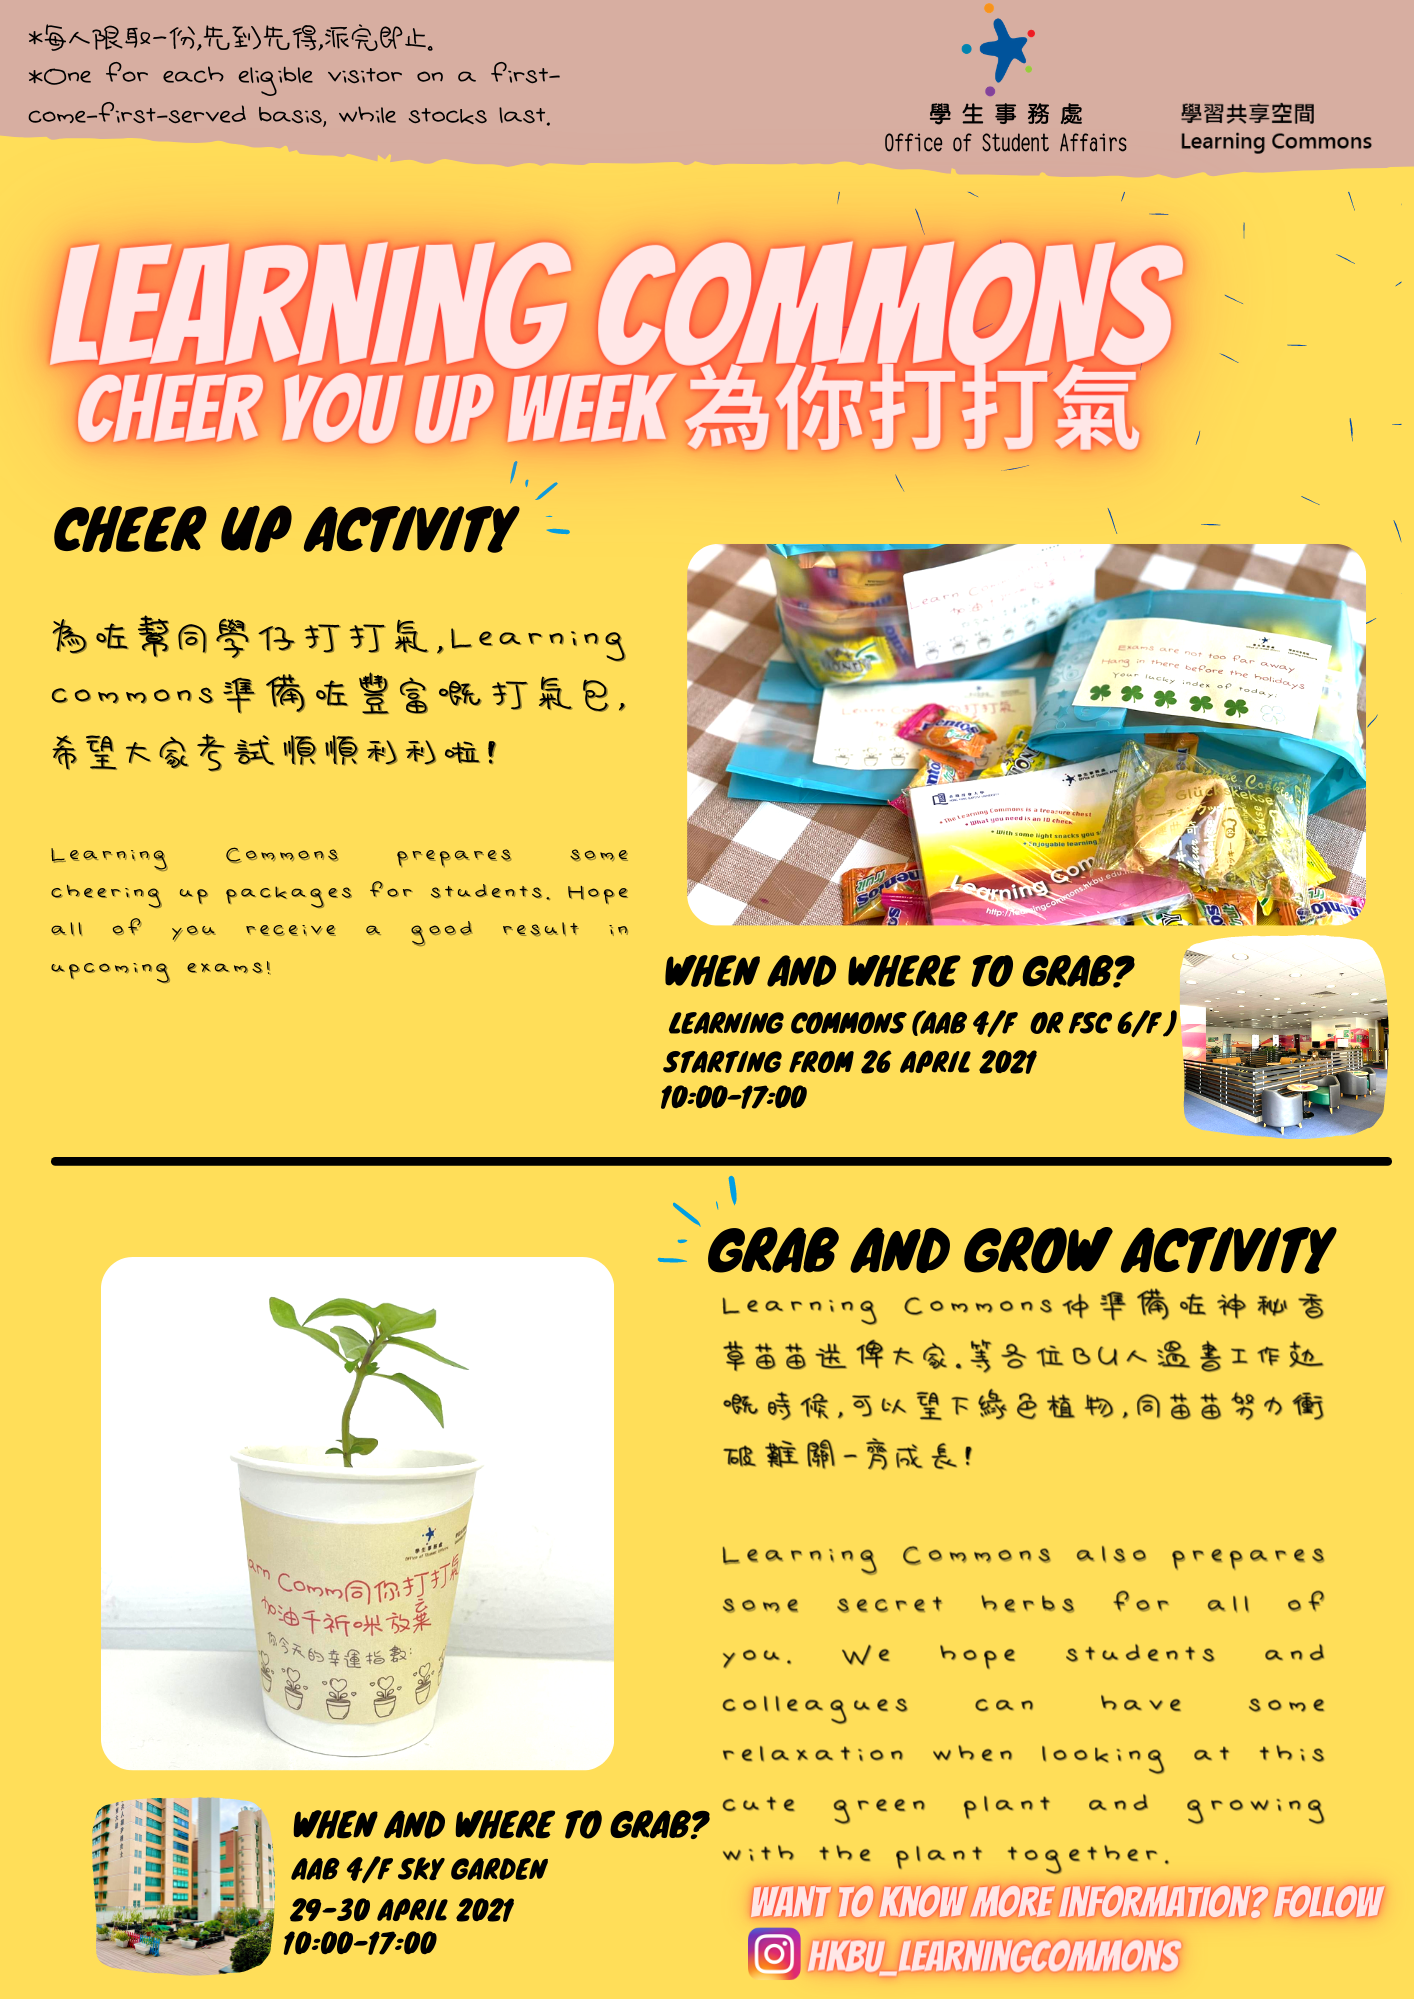 Learning Commons Cheer You Up Week 為你打打氣